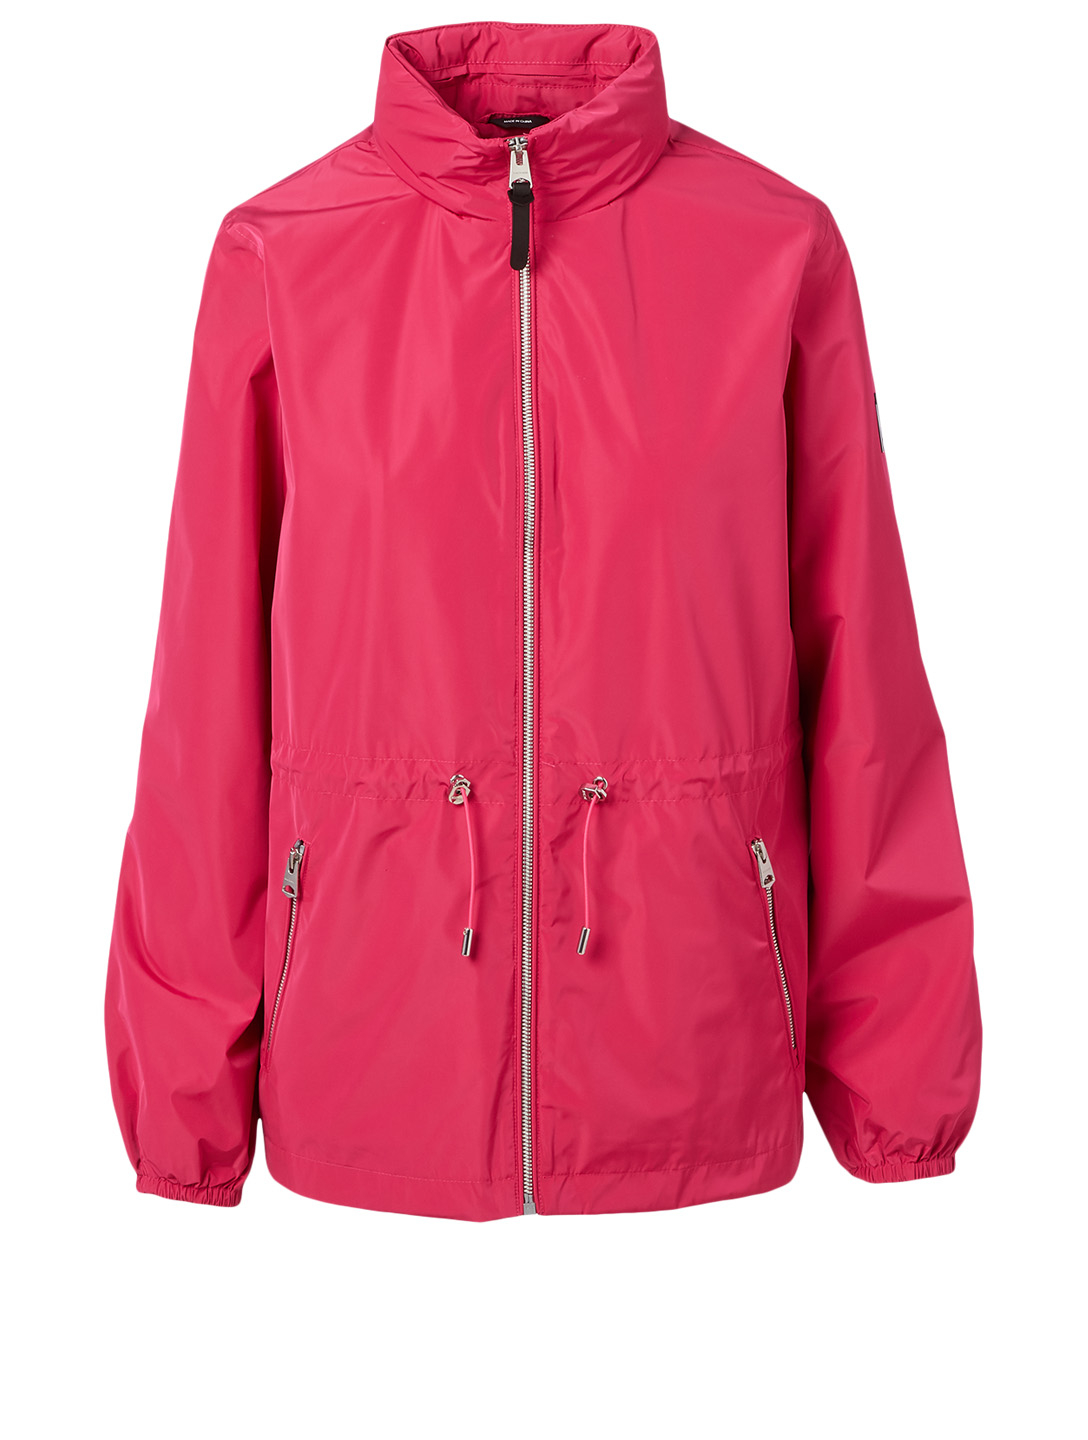 MACKAGE Bonnie Rain Jacket Women's Pink